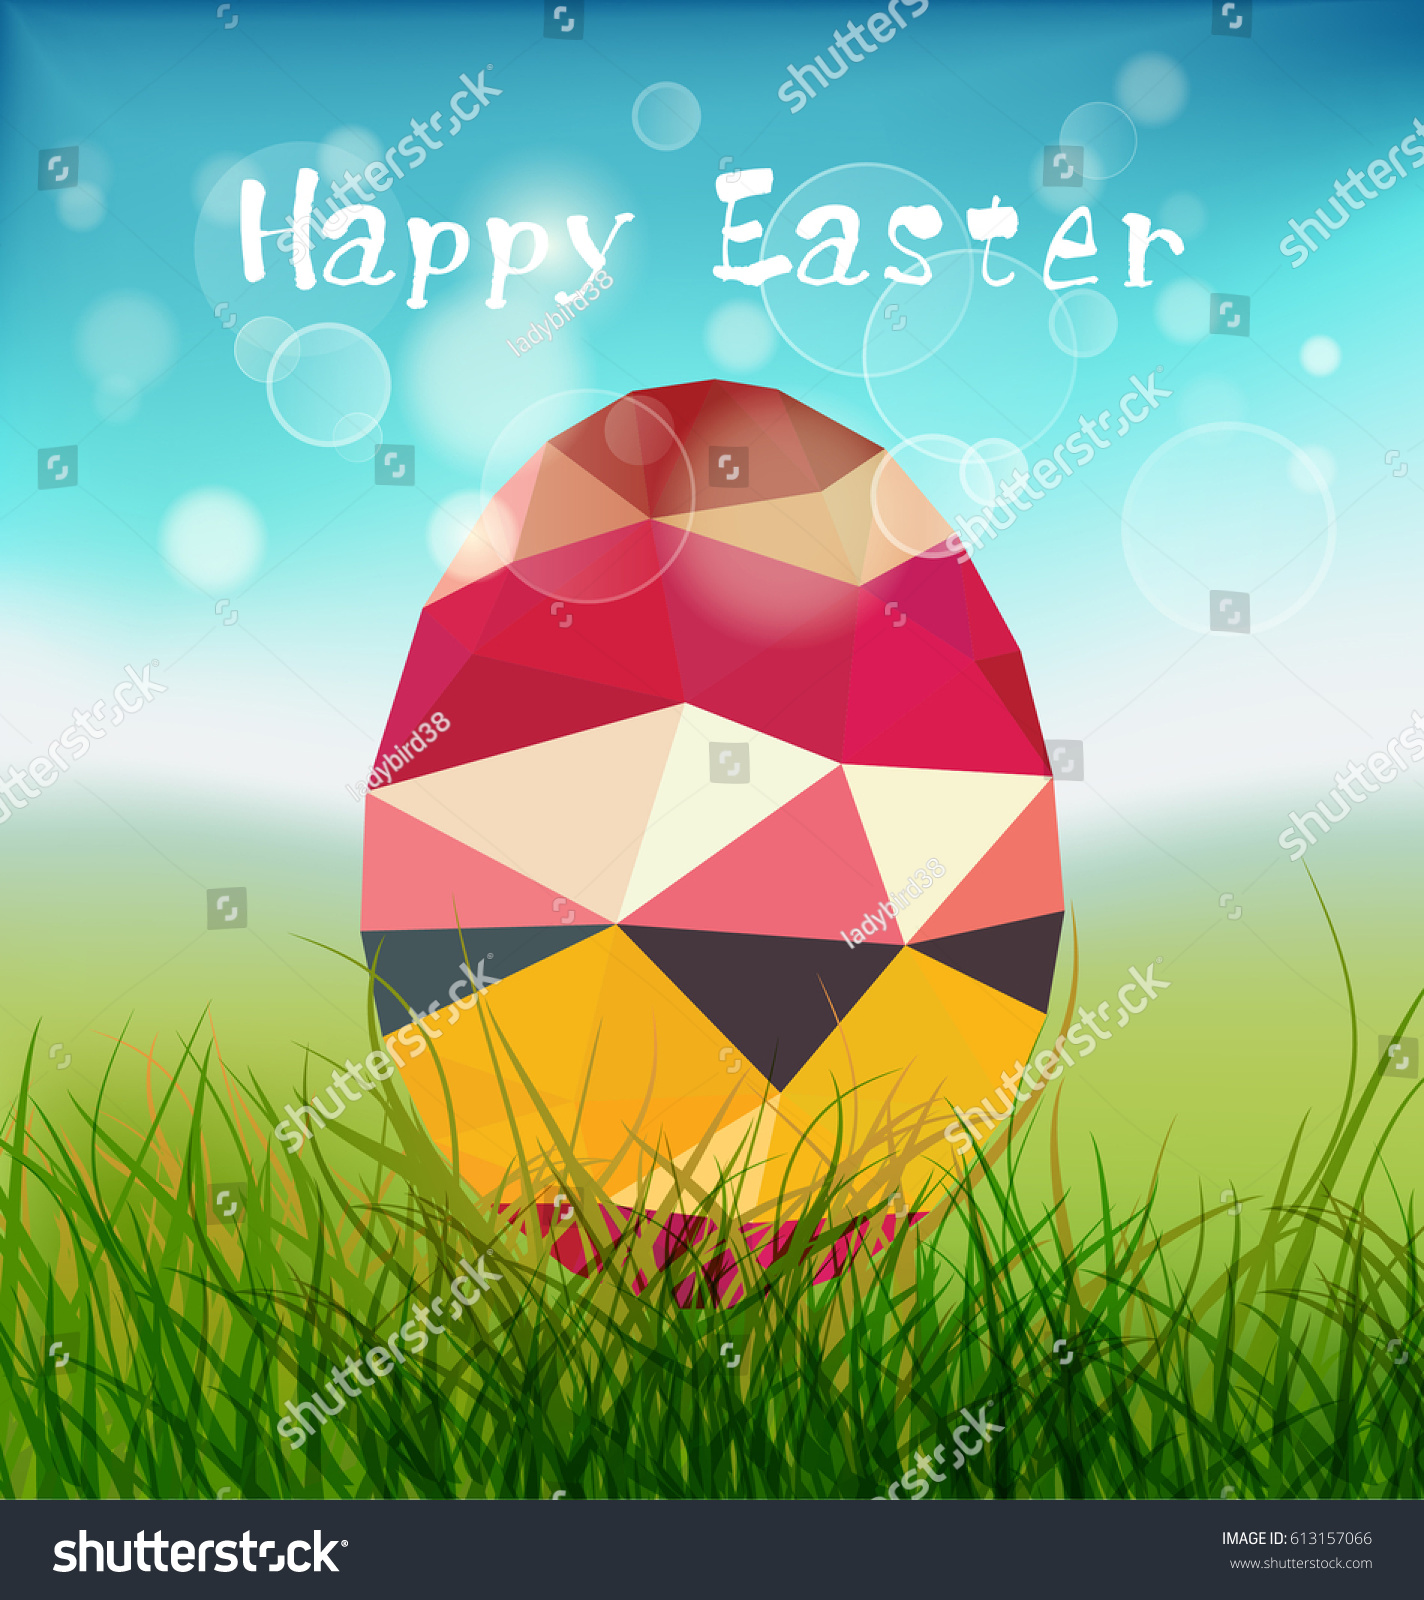 Happy Easter Flyer Or Banner Template With Modern Low Polygonal Eggs. Good  For Flyer,